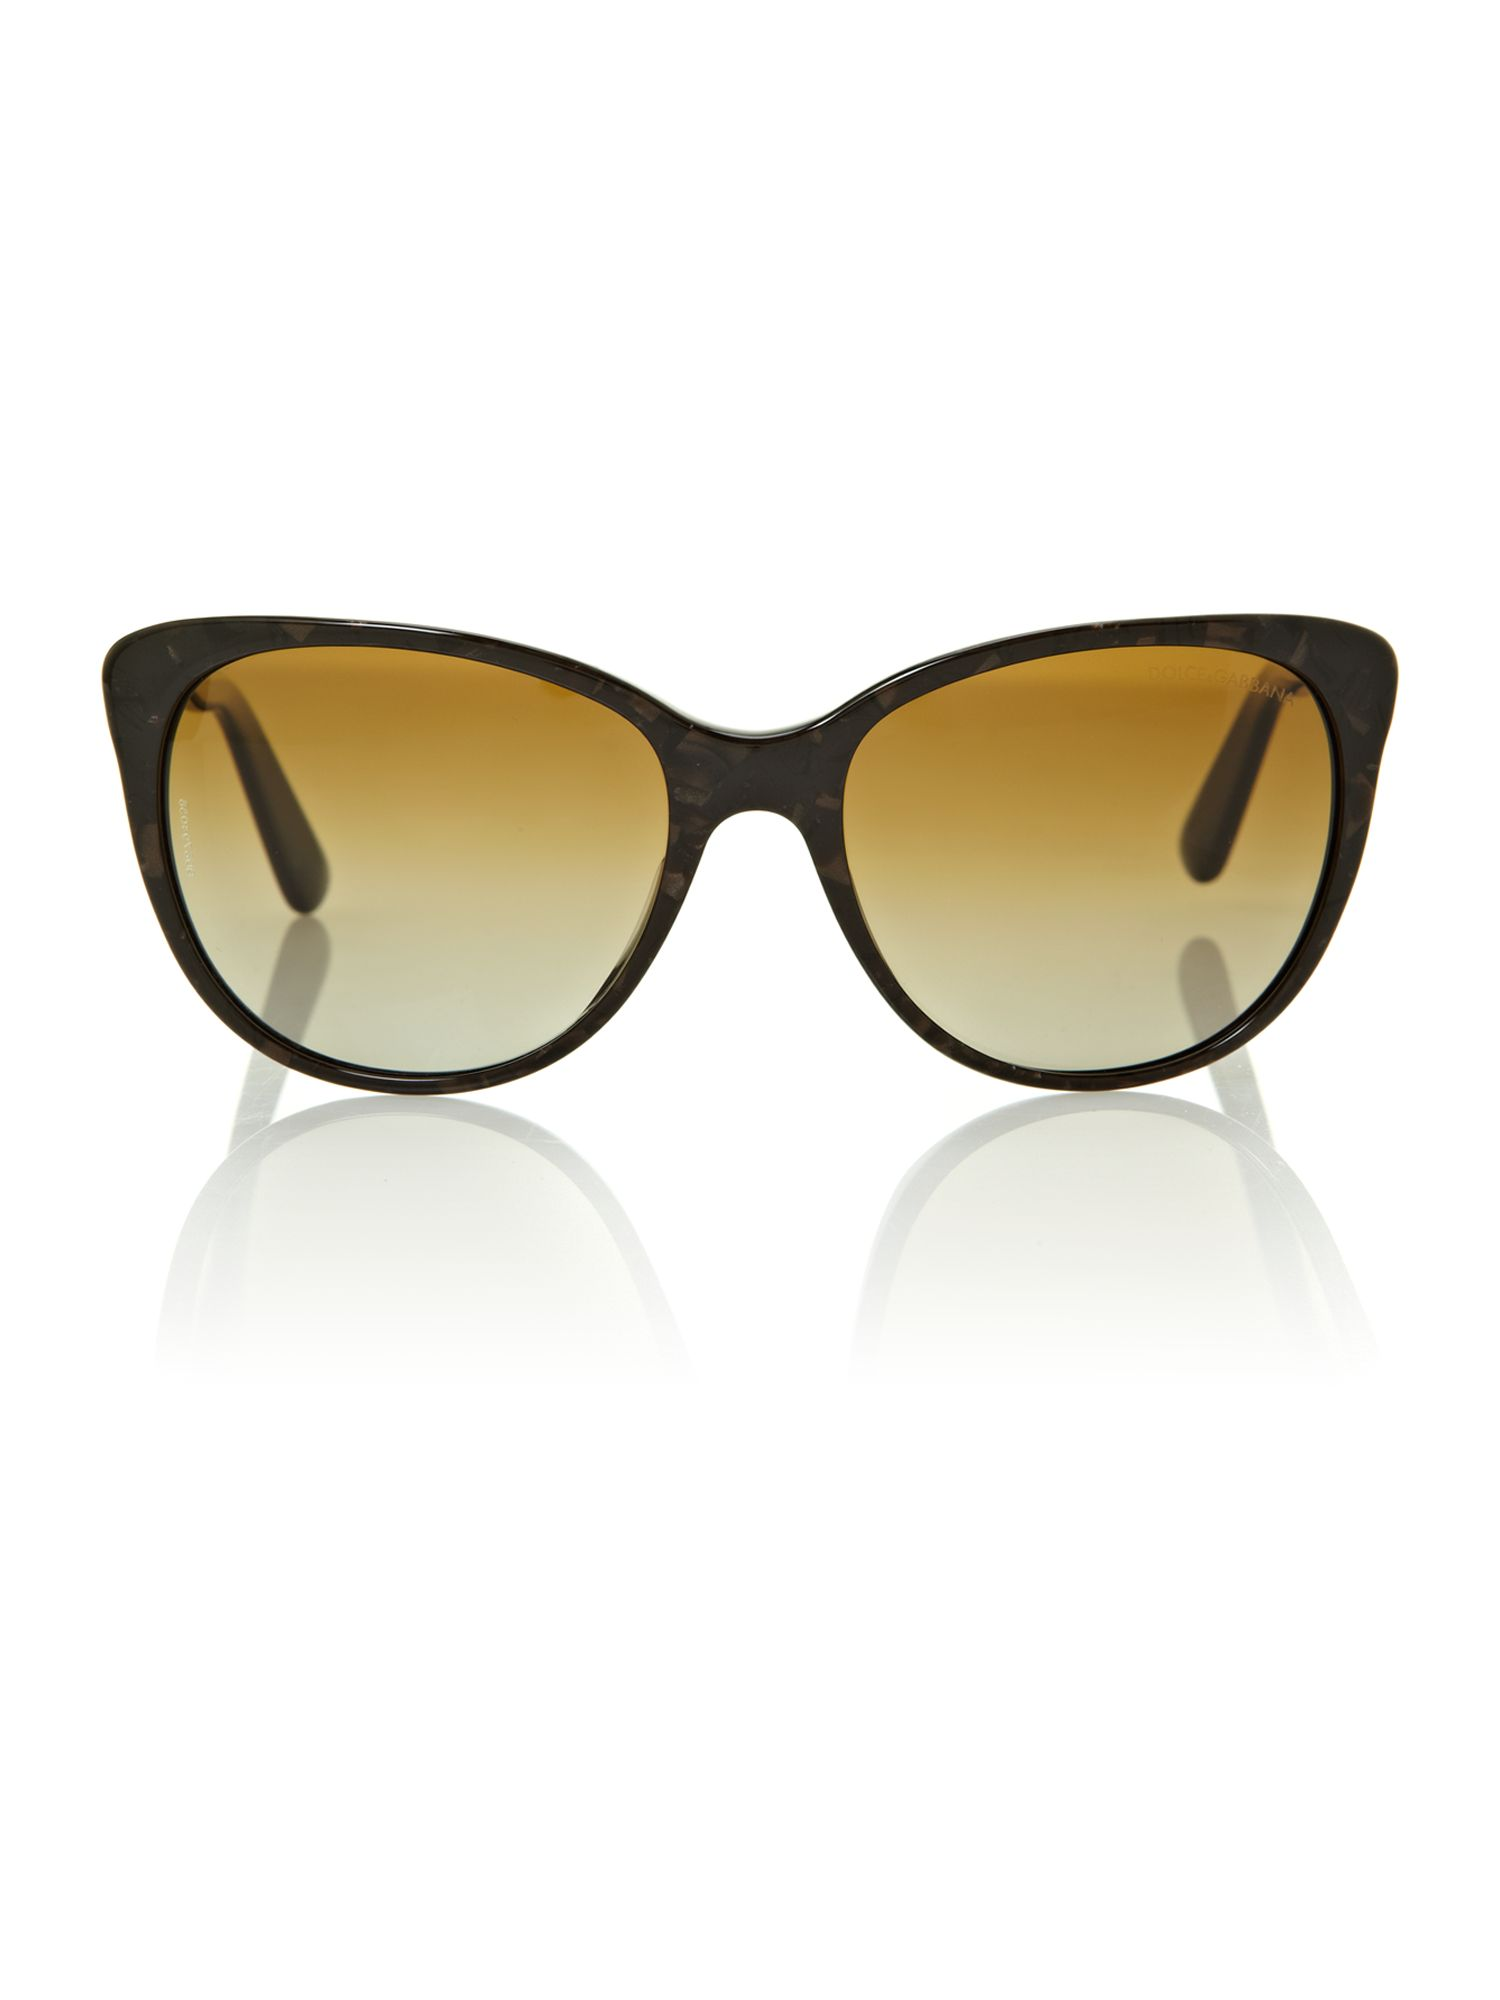 Ladies DG4156 brown sicly sunglasses